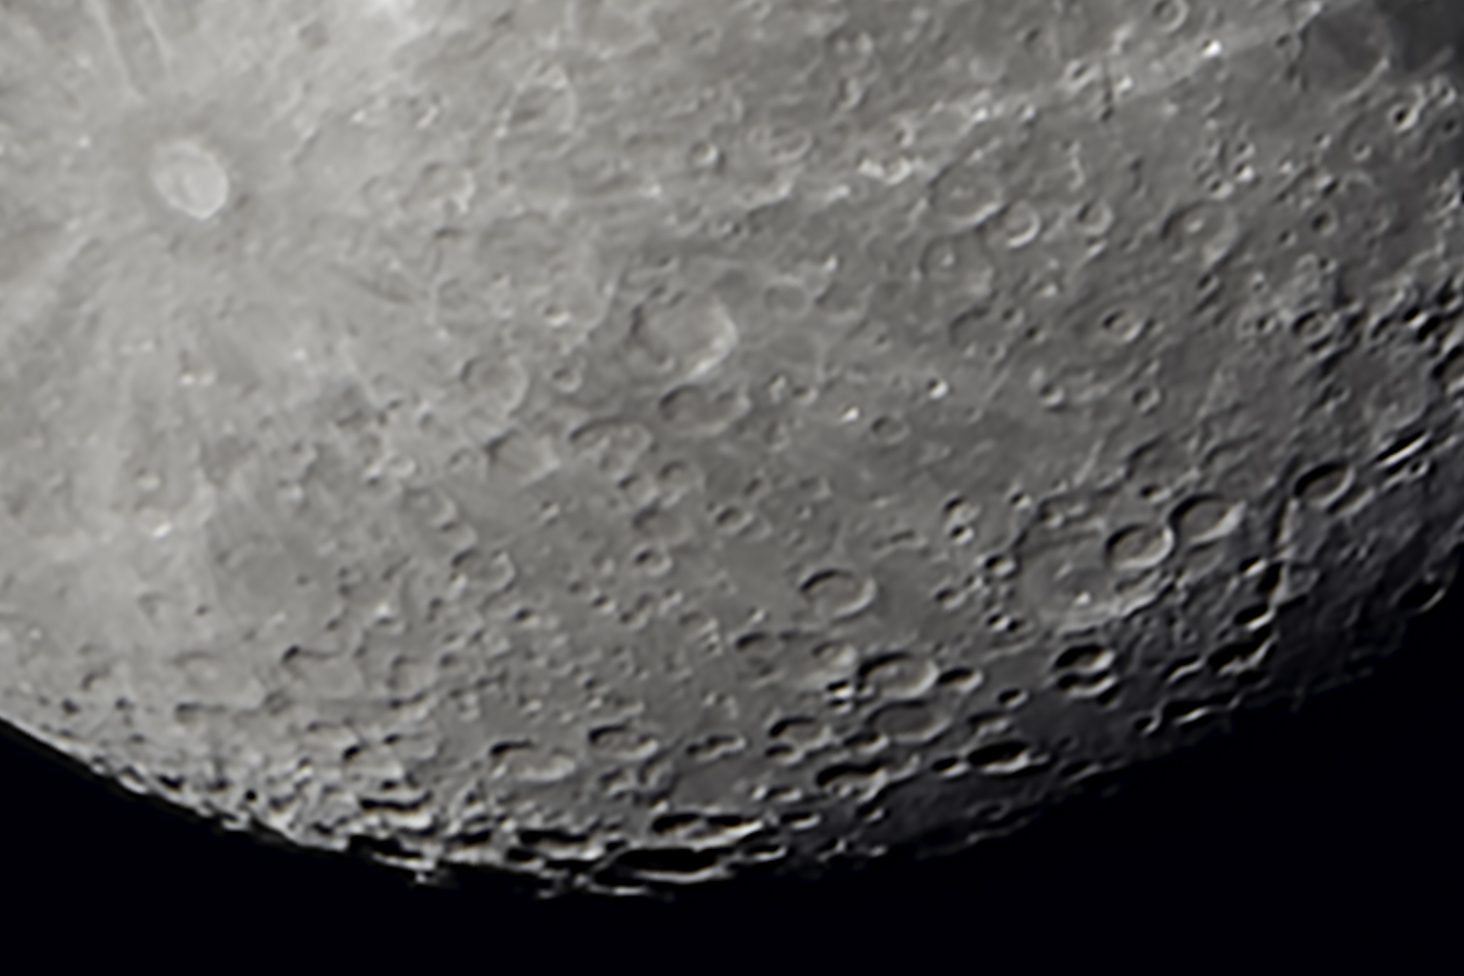 1:1 Close-up of Moon - 40 image stack in RegiStax